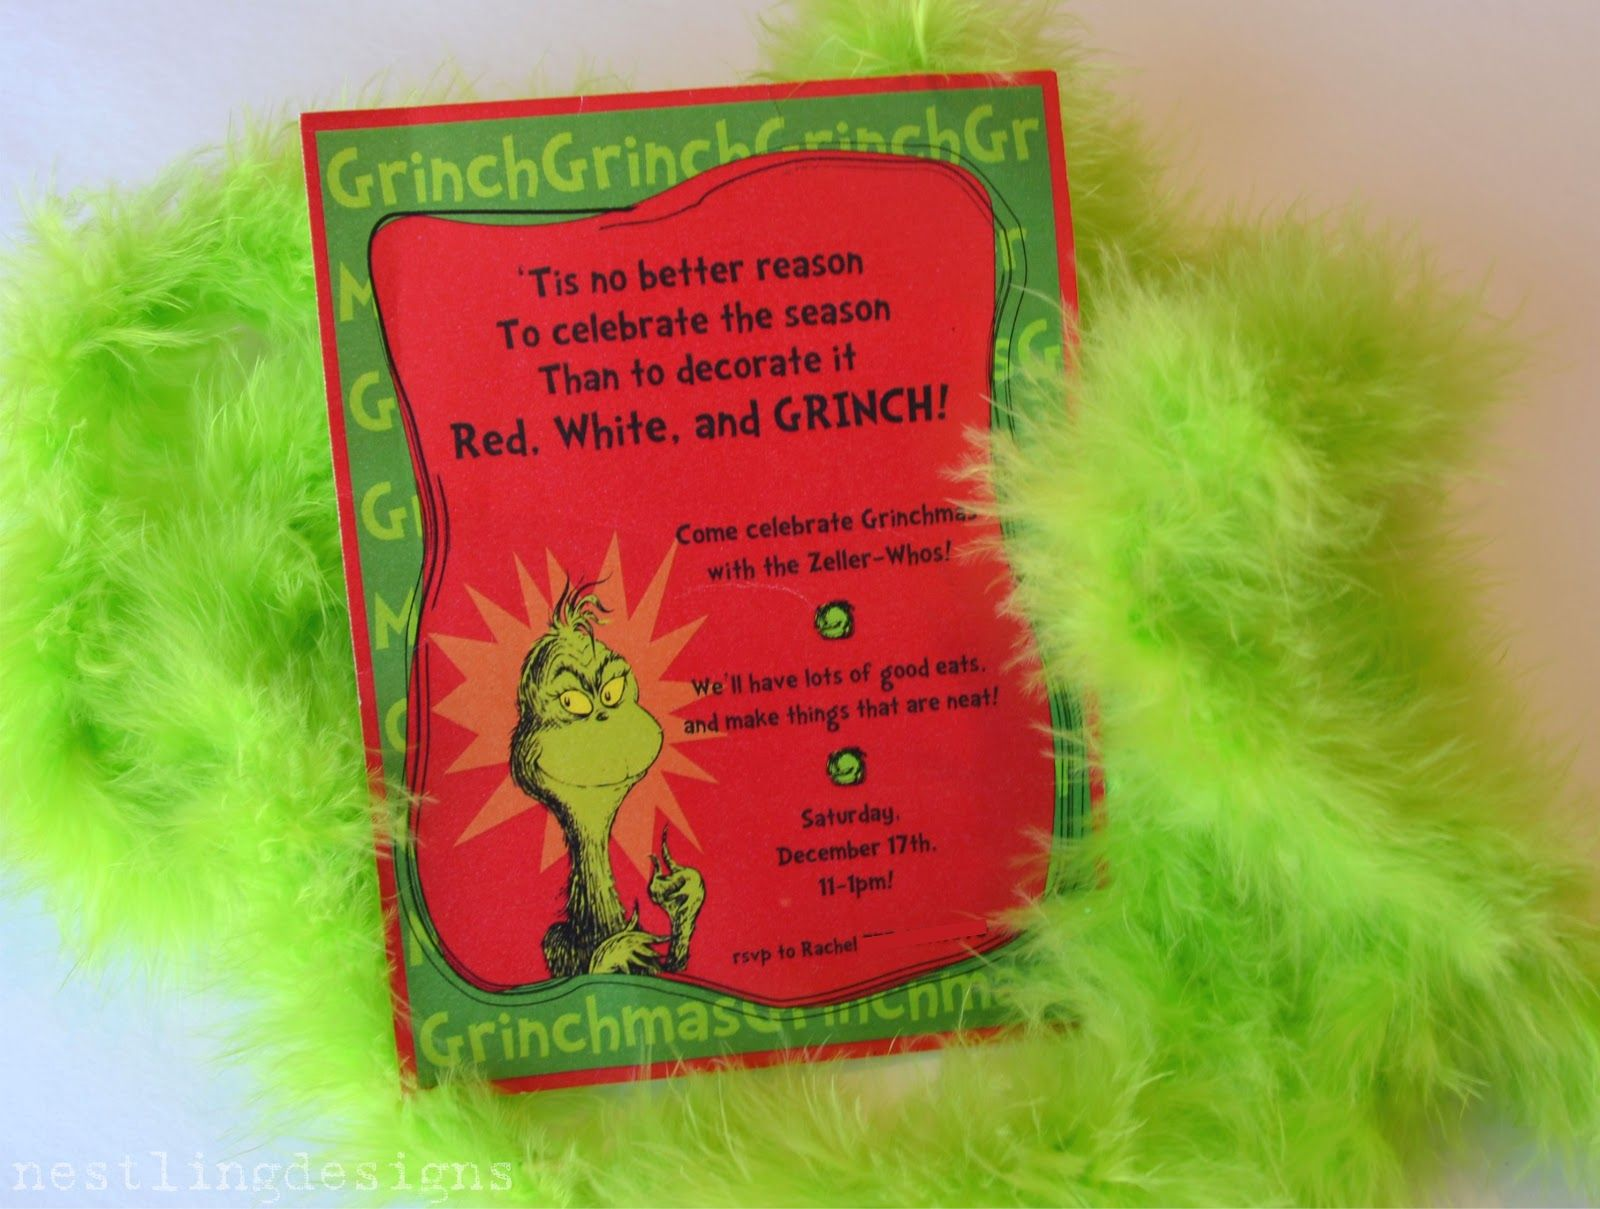 Grinch Christmas Party, Grinch Christmas